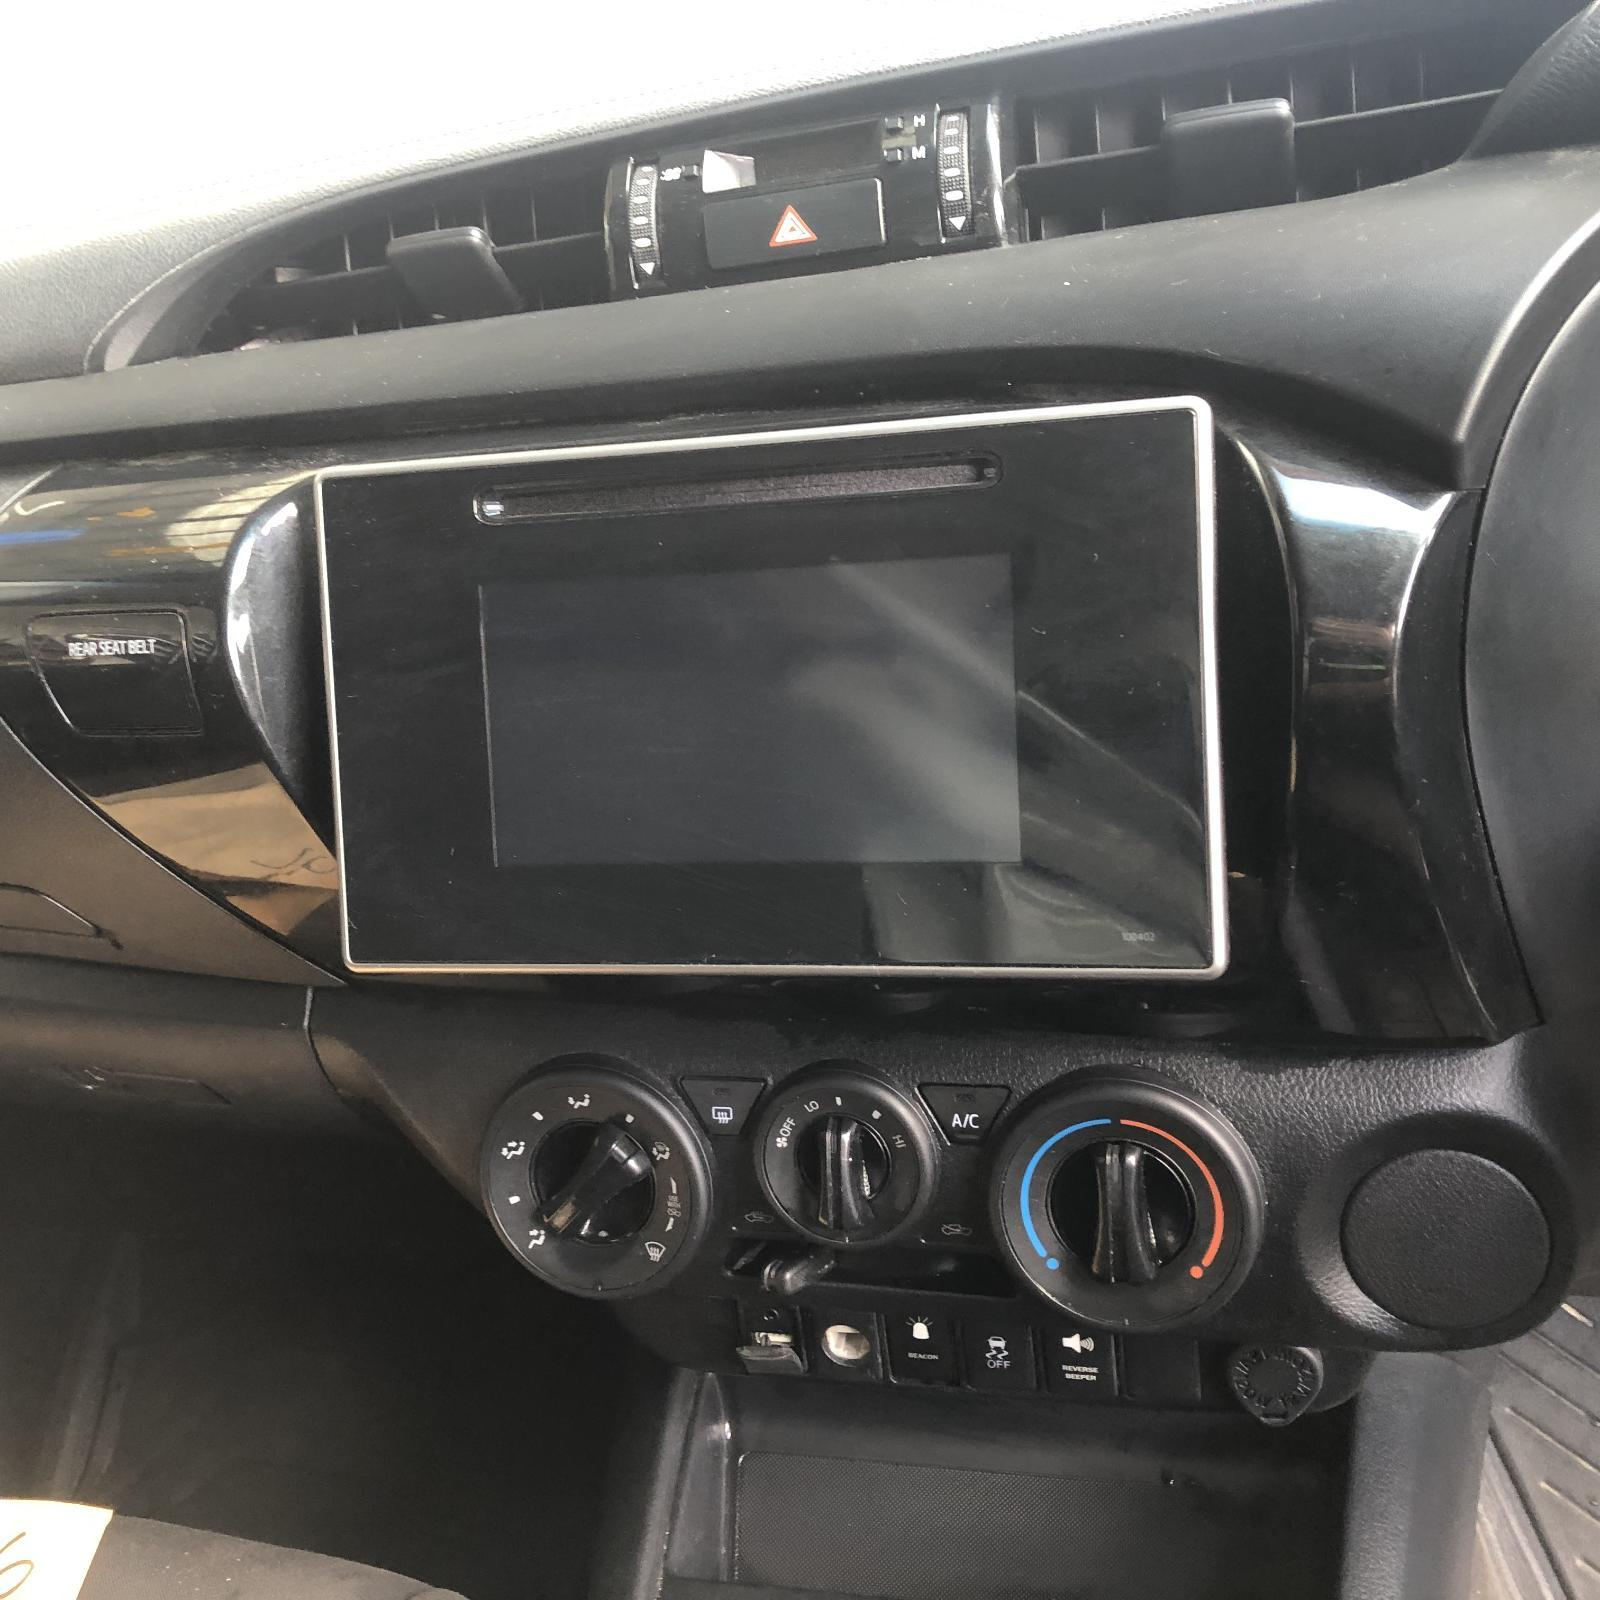 TOYOTA HILUX, Radio/Cd/Dvd/Sat/Tv, 6IN TOUCHSCREEN, P/N ON FACE 100405, 09/15-